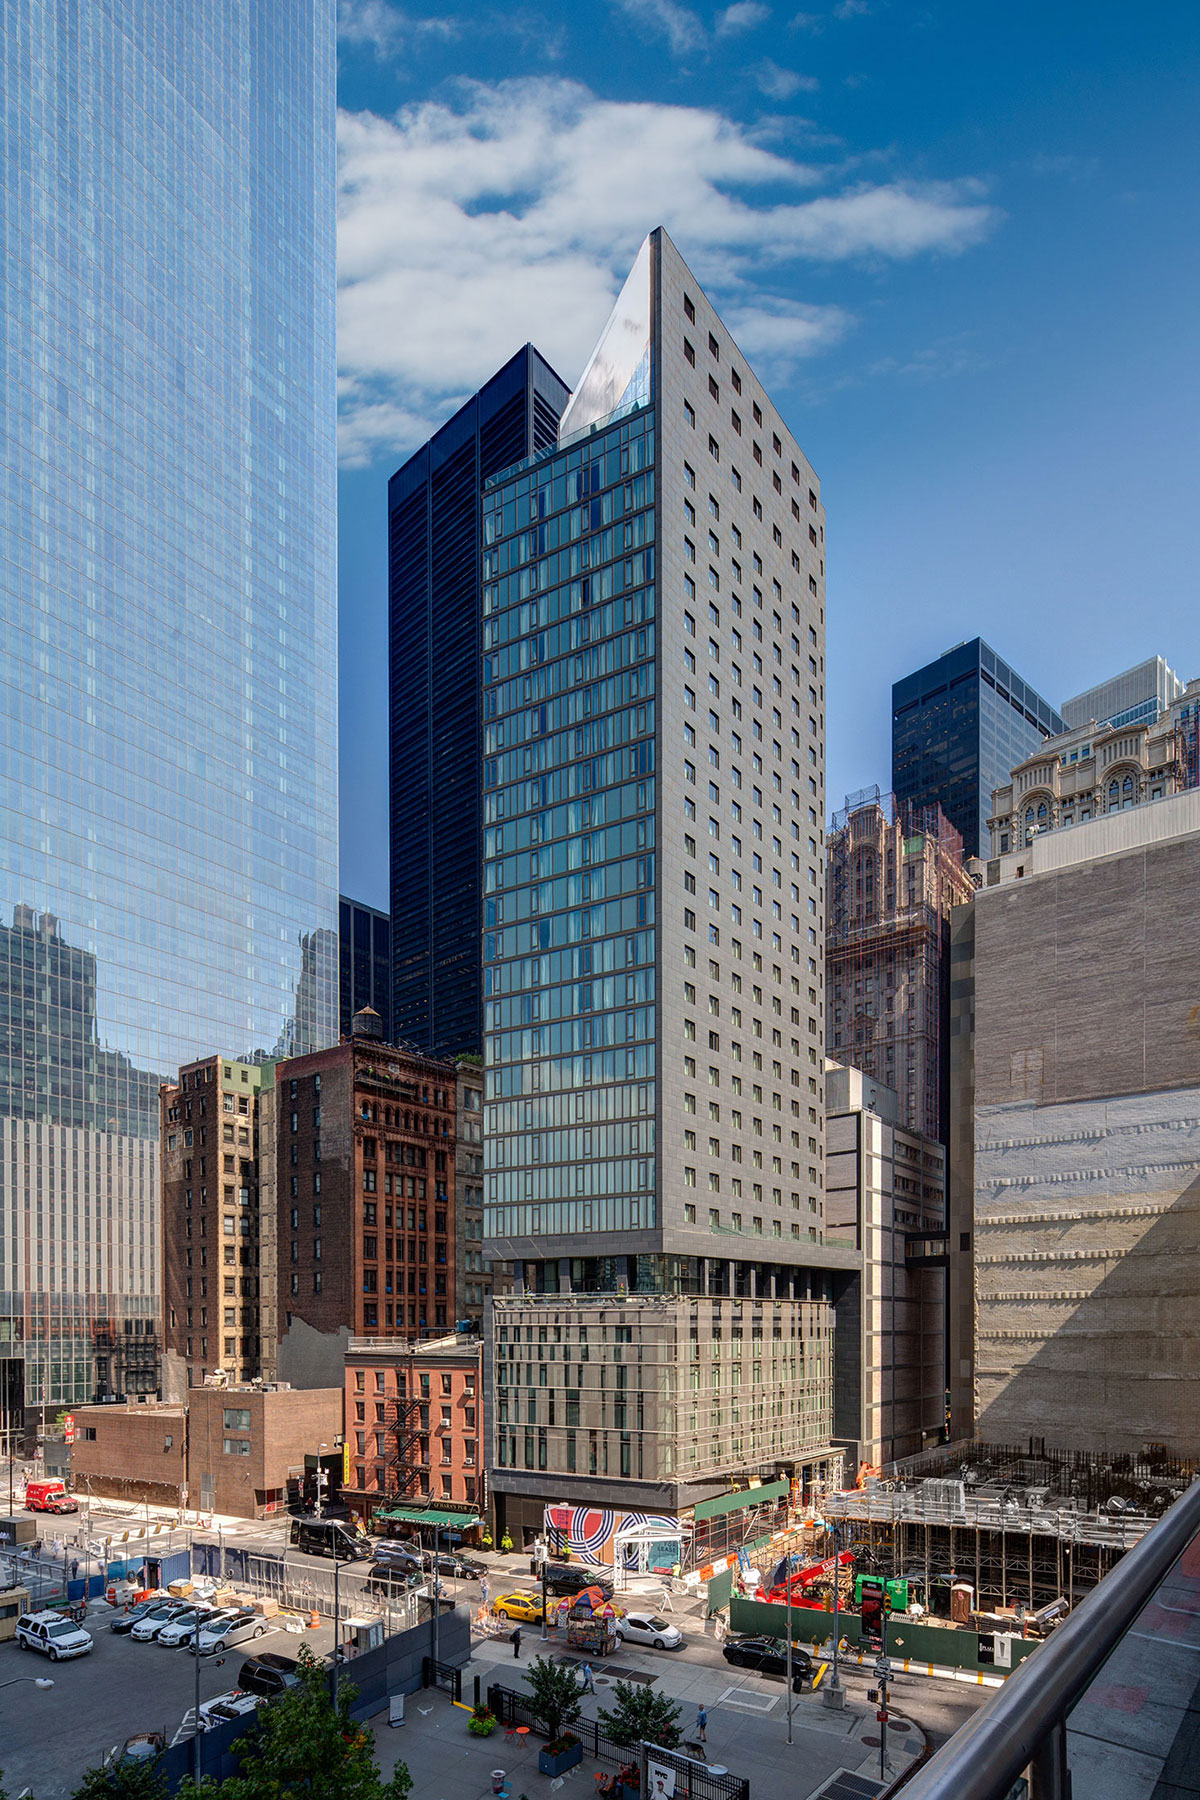 South facade of the World Trade Center Tower Courtyard by Marriott project on the 133 Greenwich street in Downtown Manhattan designed by the architecture studio Danny Forster & Architecture